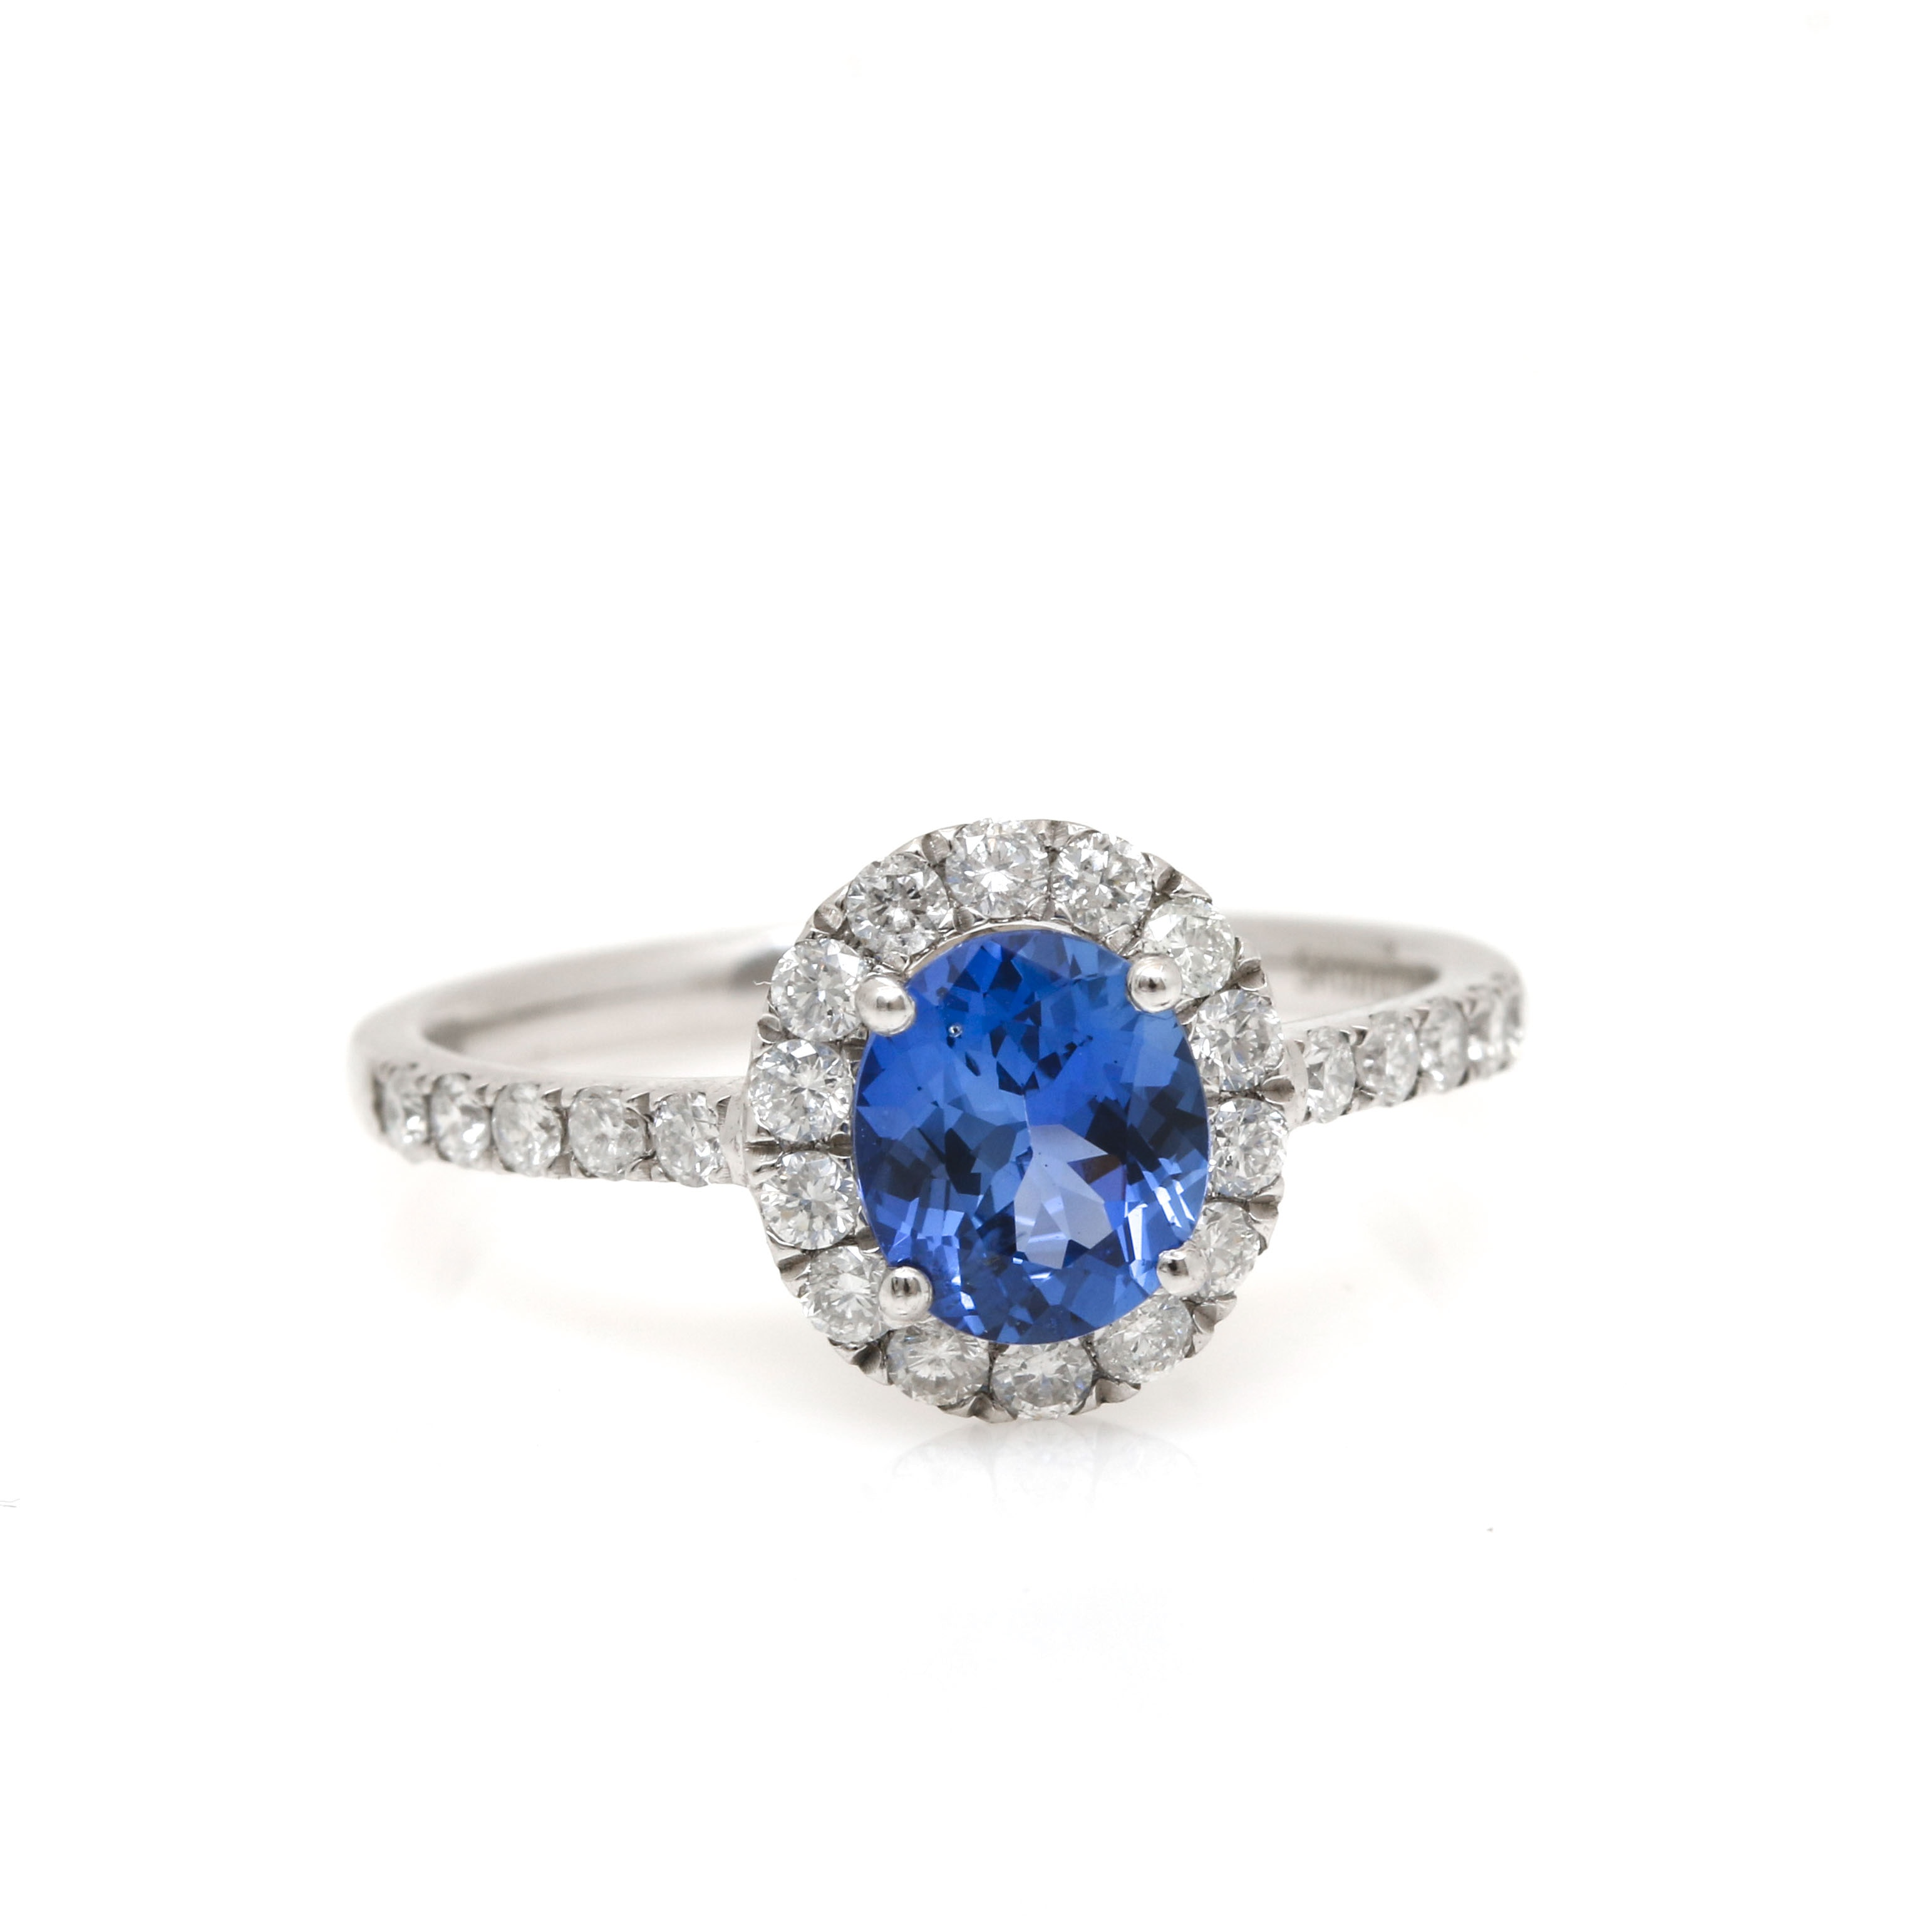 Platinum 1.07 CT Natural Sapphire and Diamond Ring With GIA Report